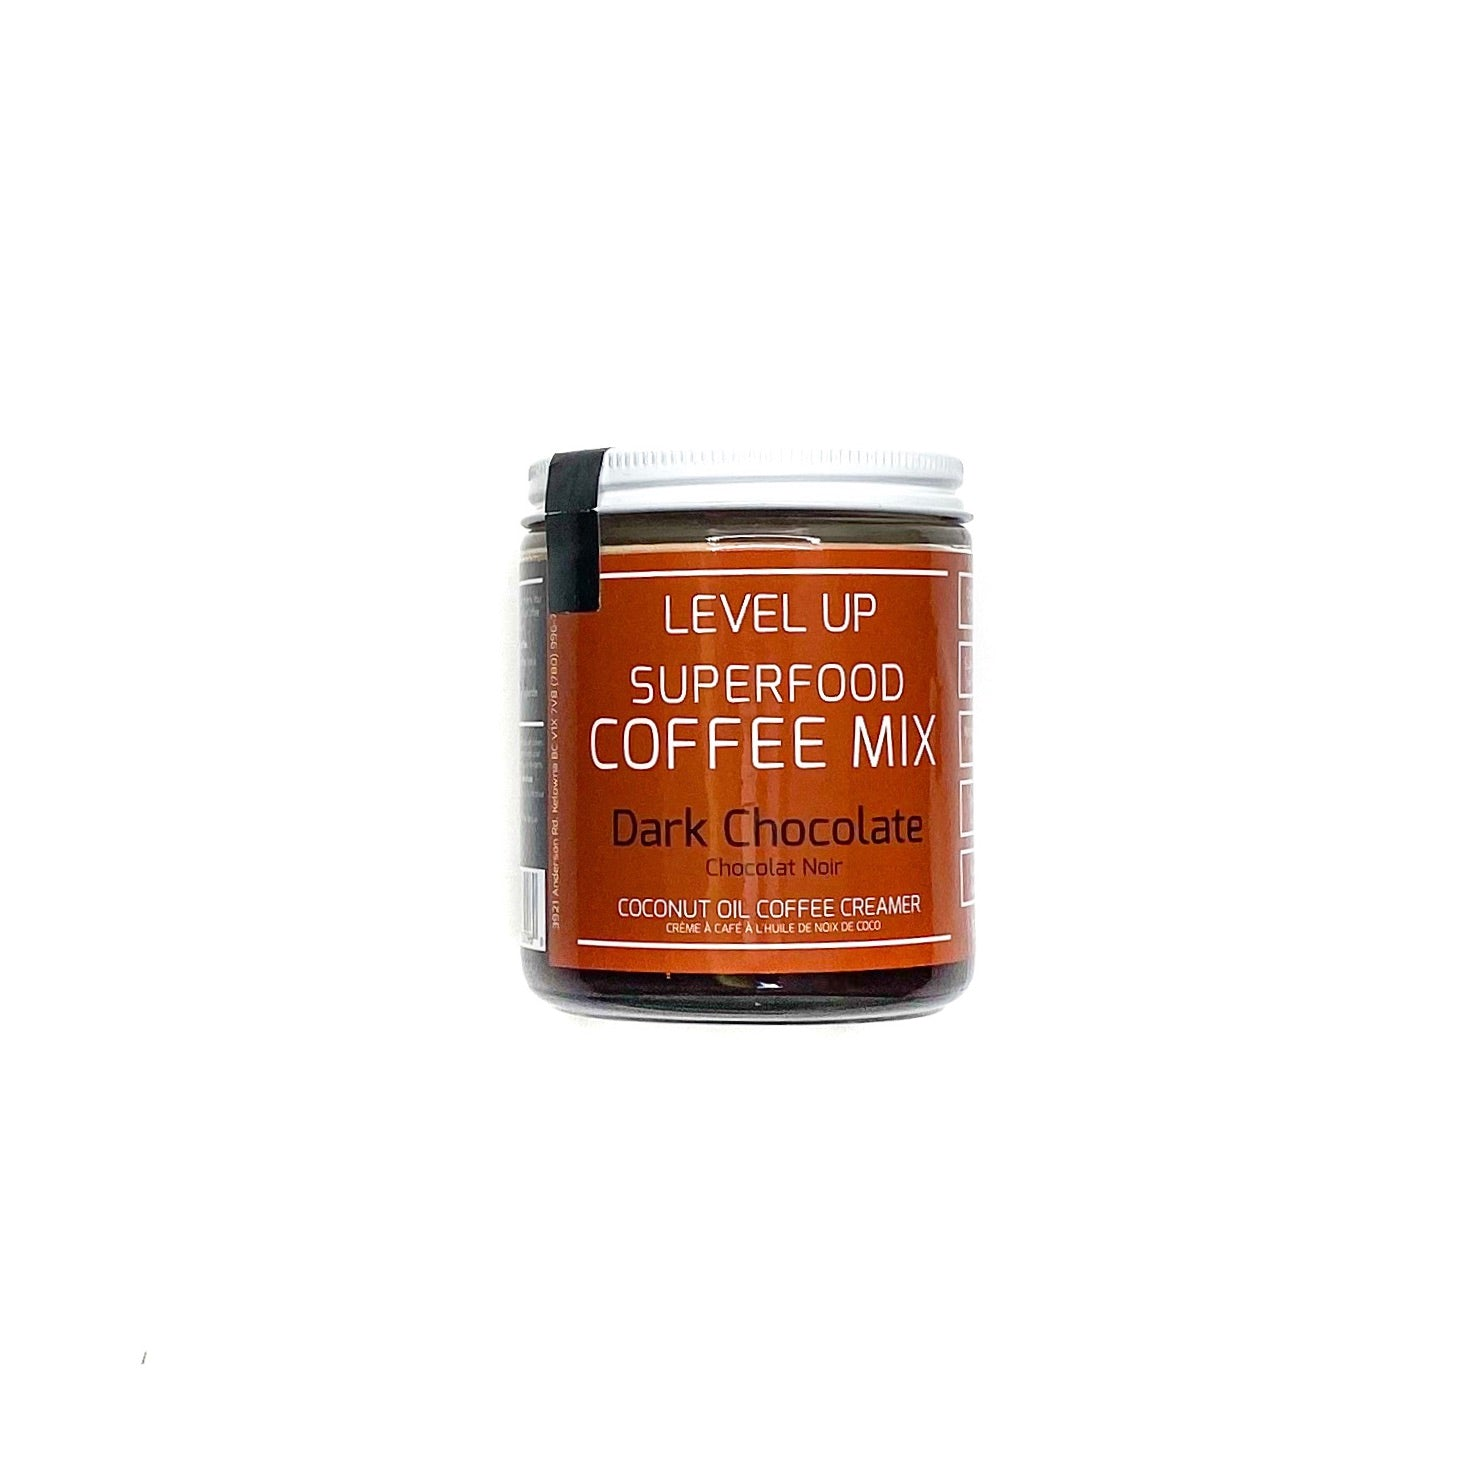 Level Up Superfood Coffee Mix Dark Chocolate